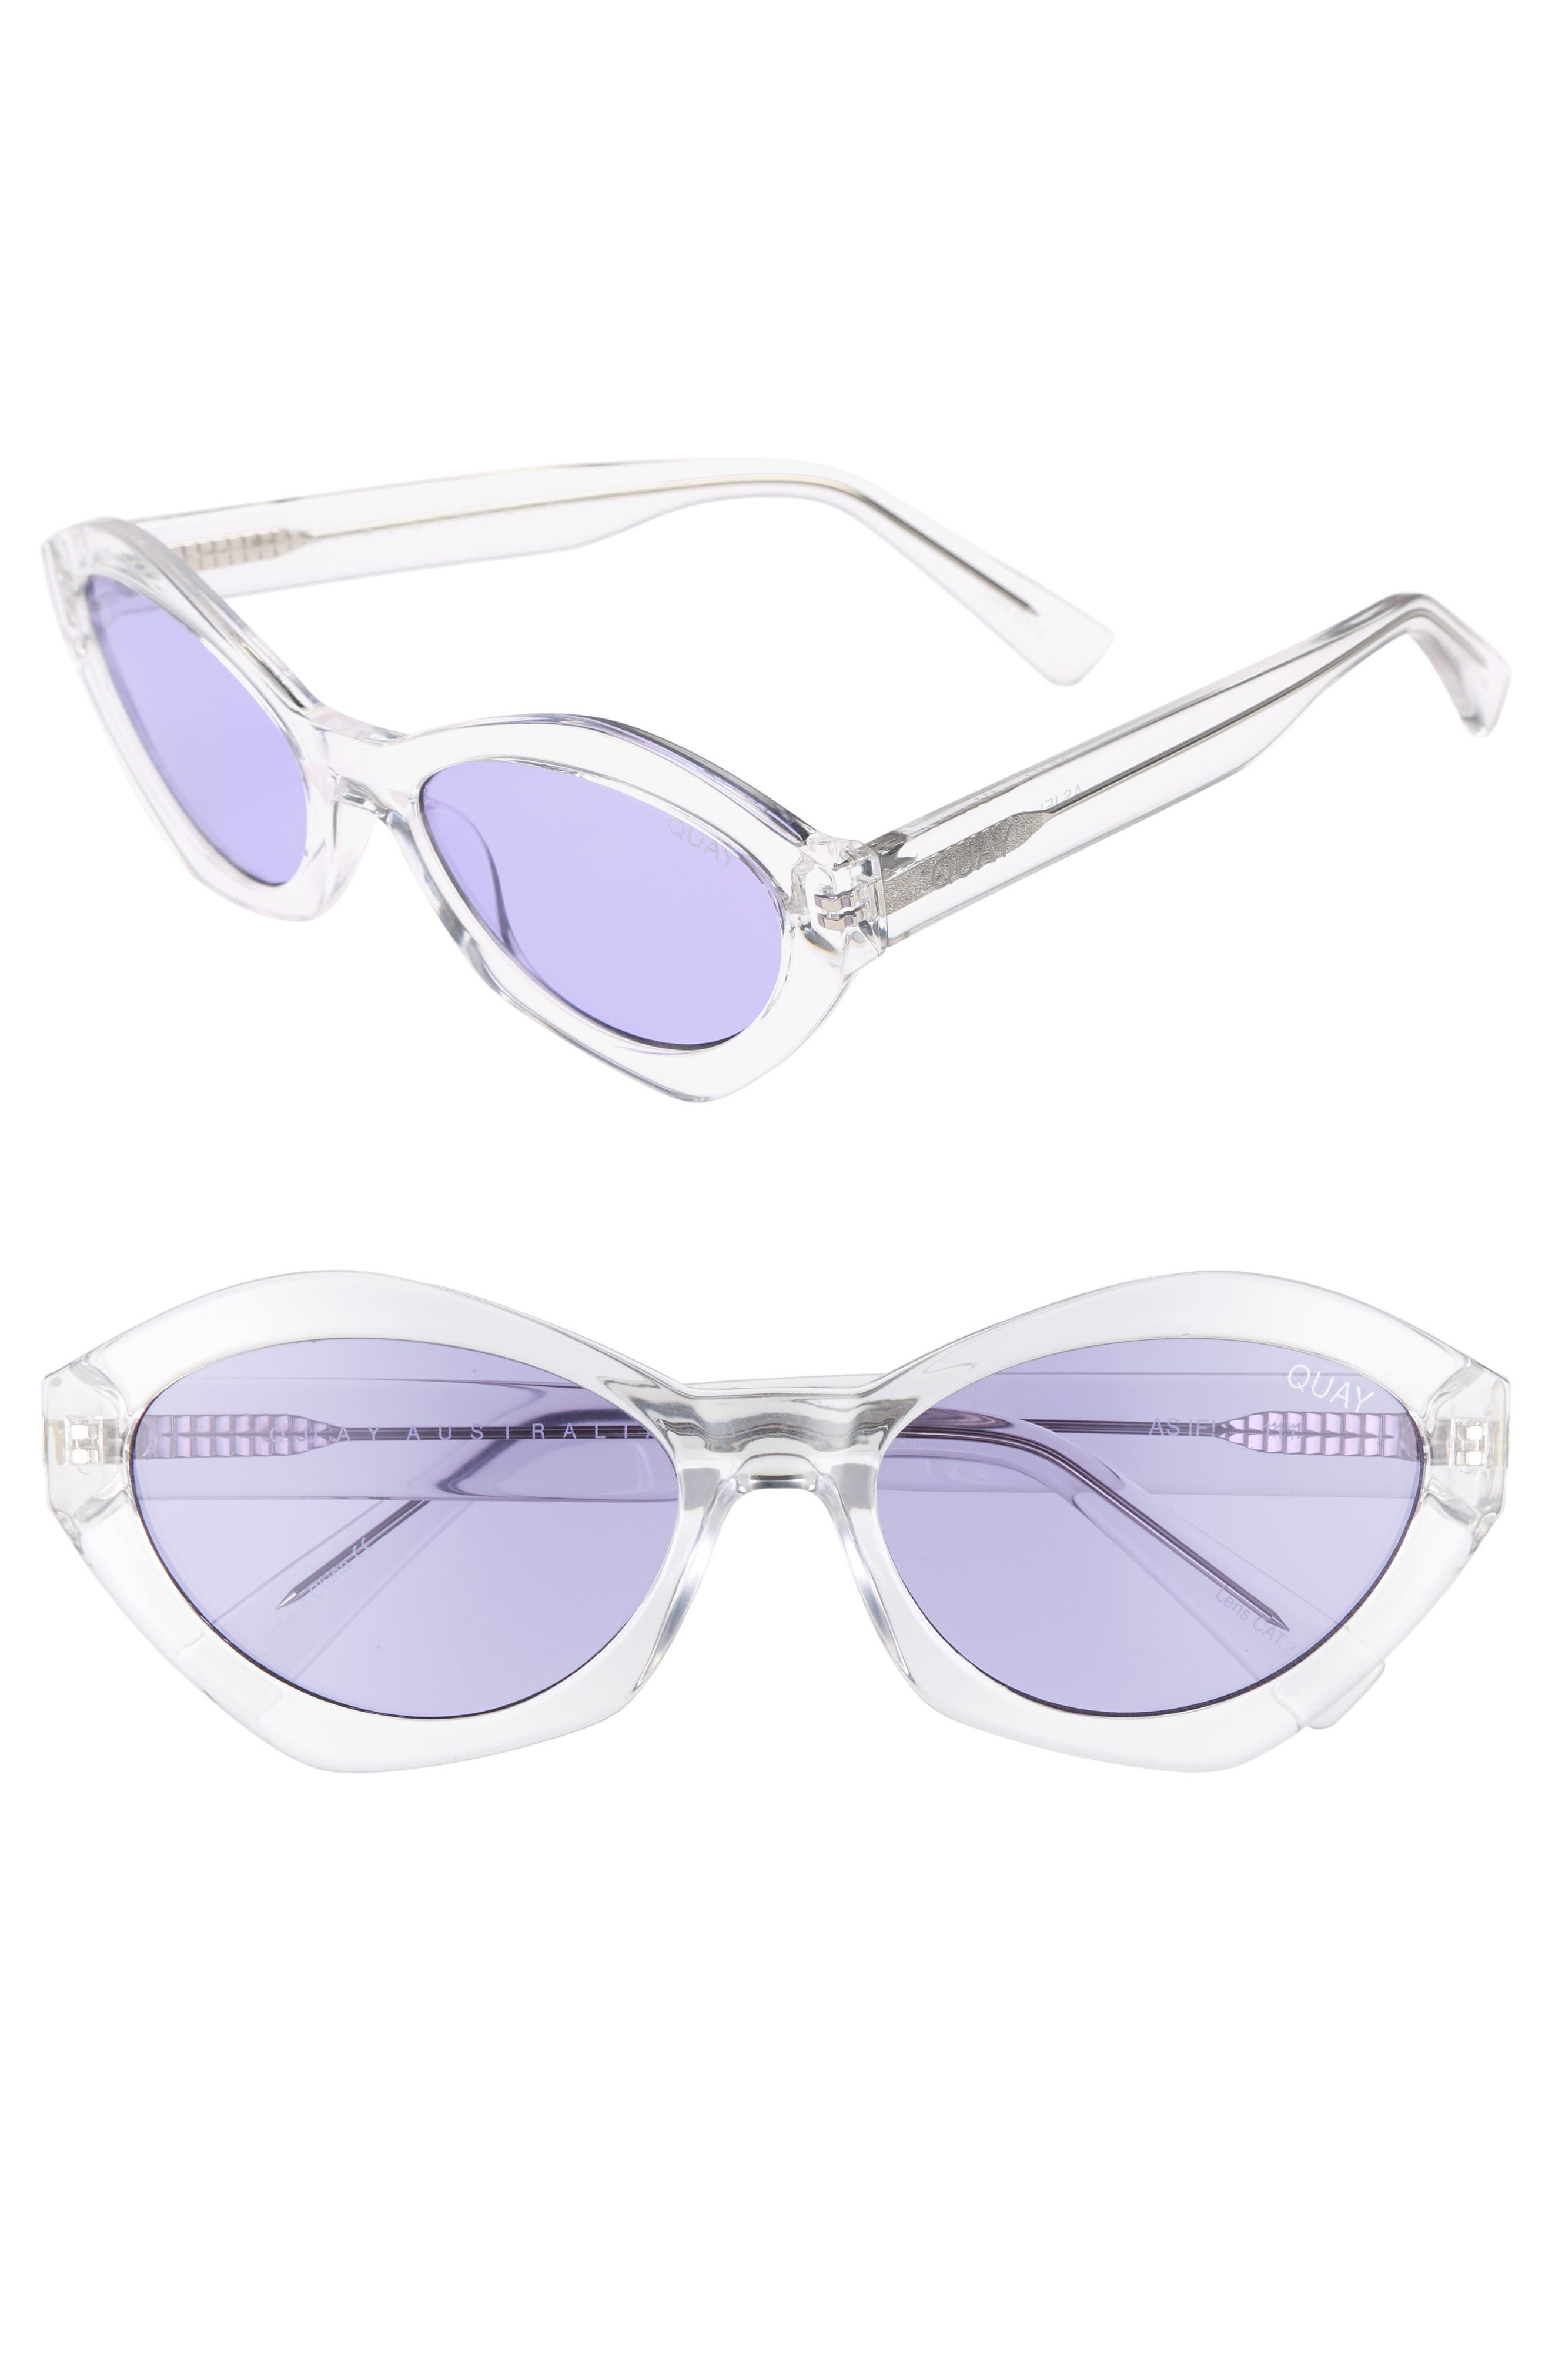 54mm As If Oval Sunglasses,                         Main,                         color, Clear/ Purple